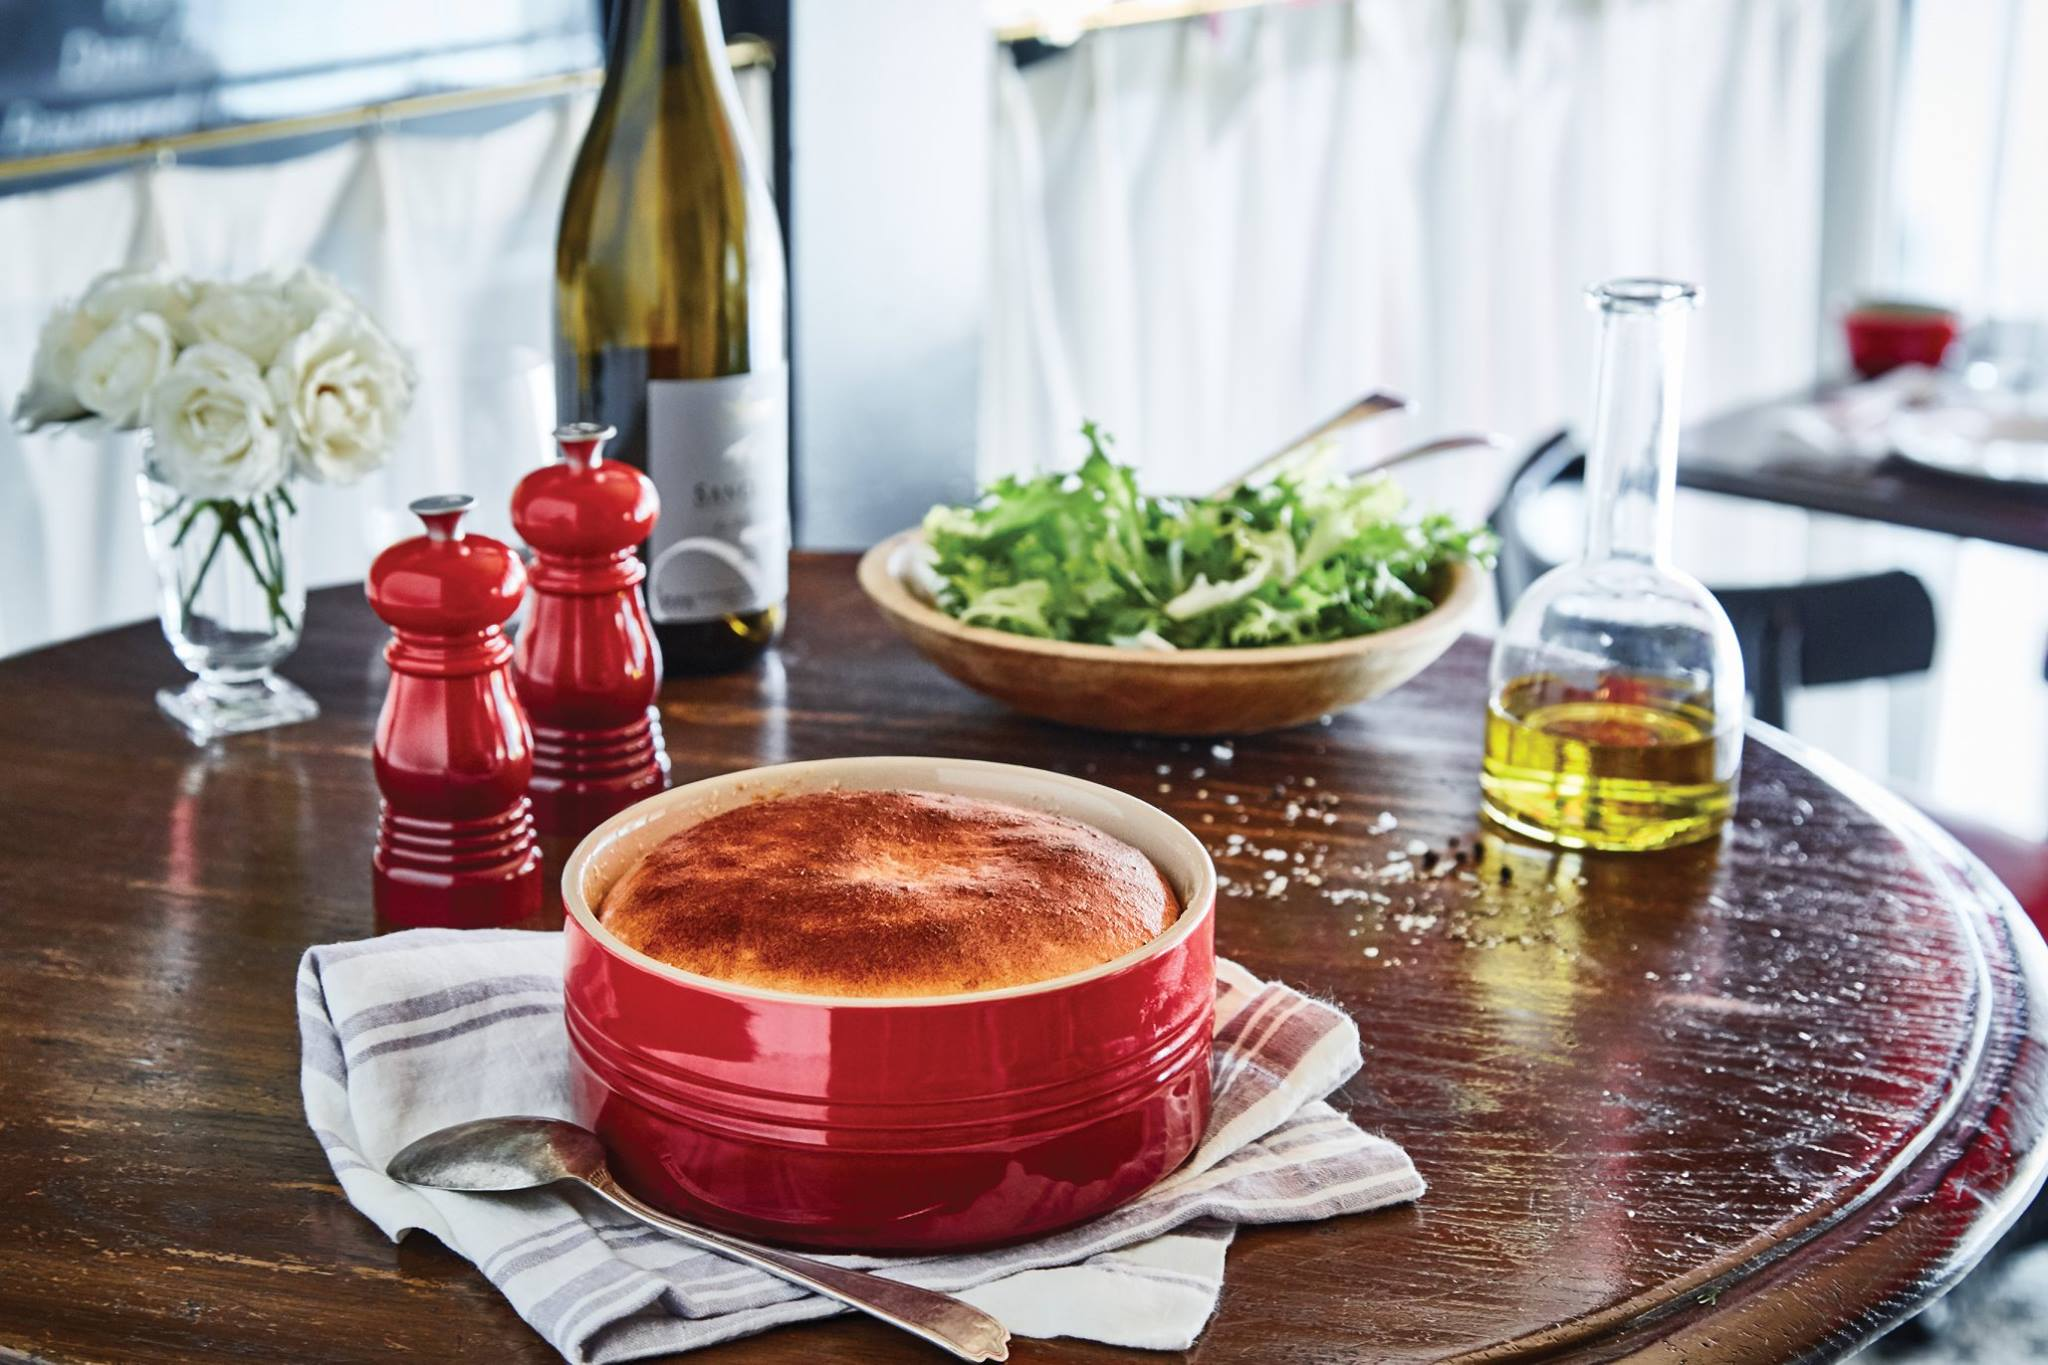 Photo: Le Creuset